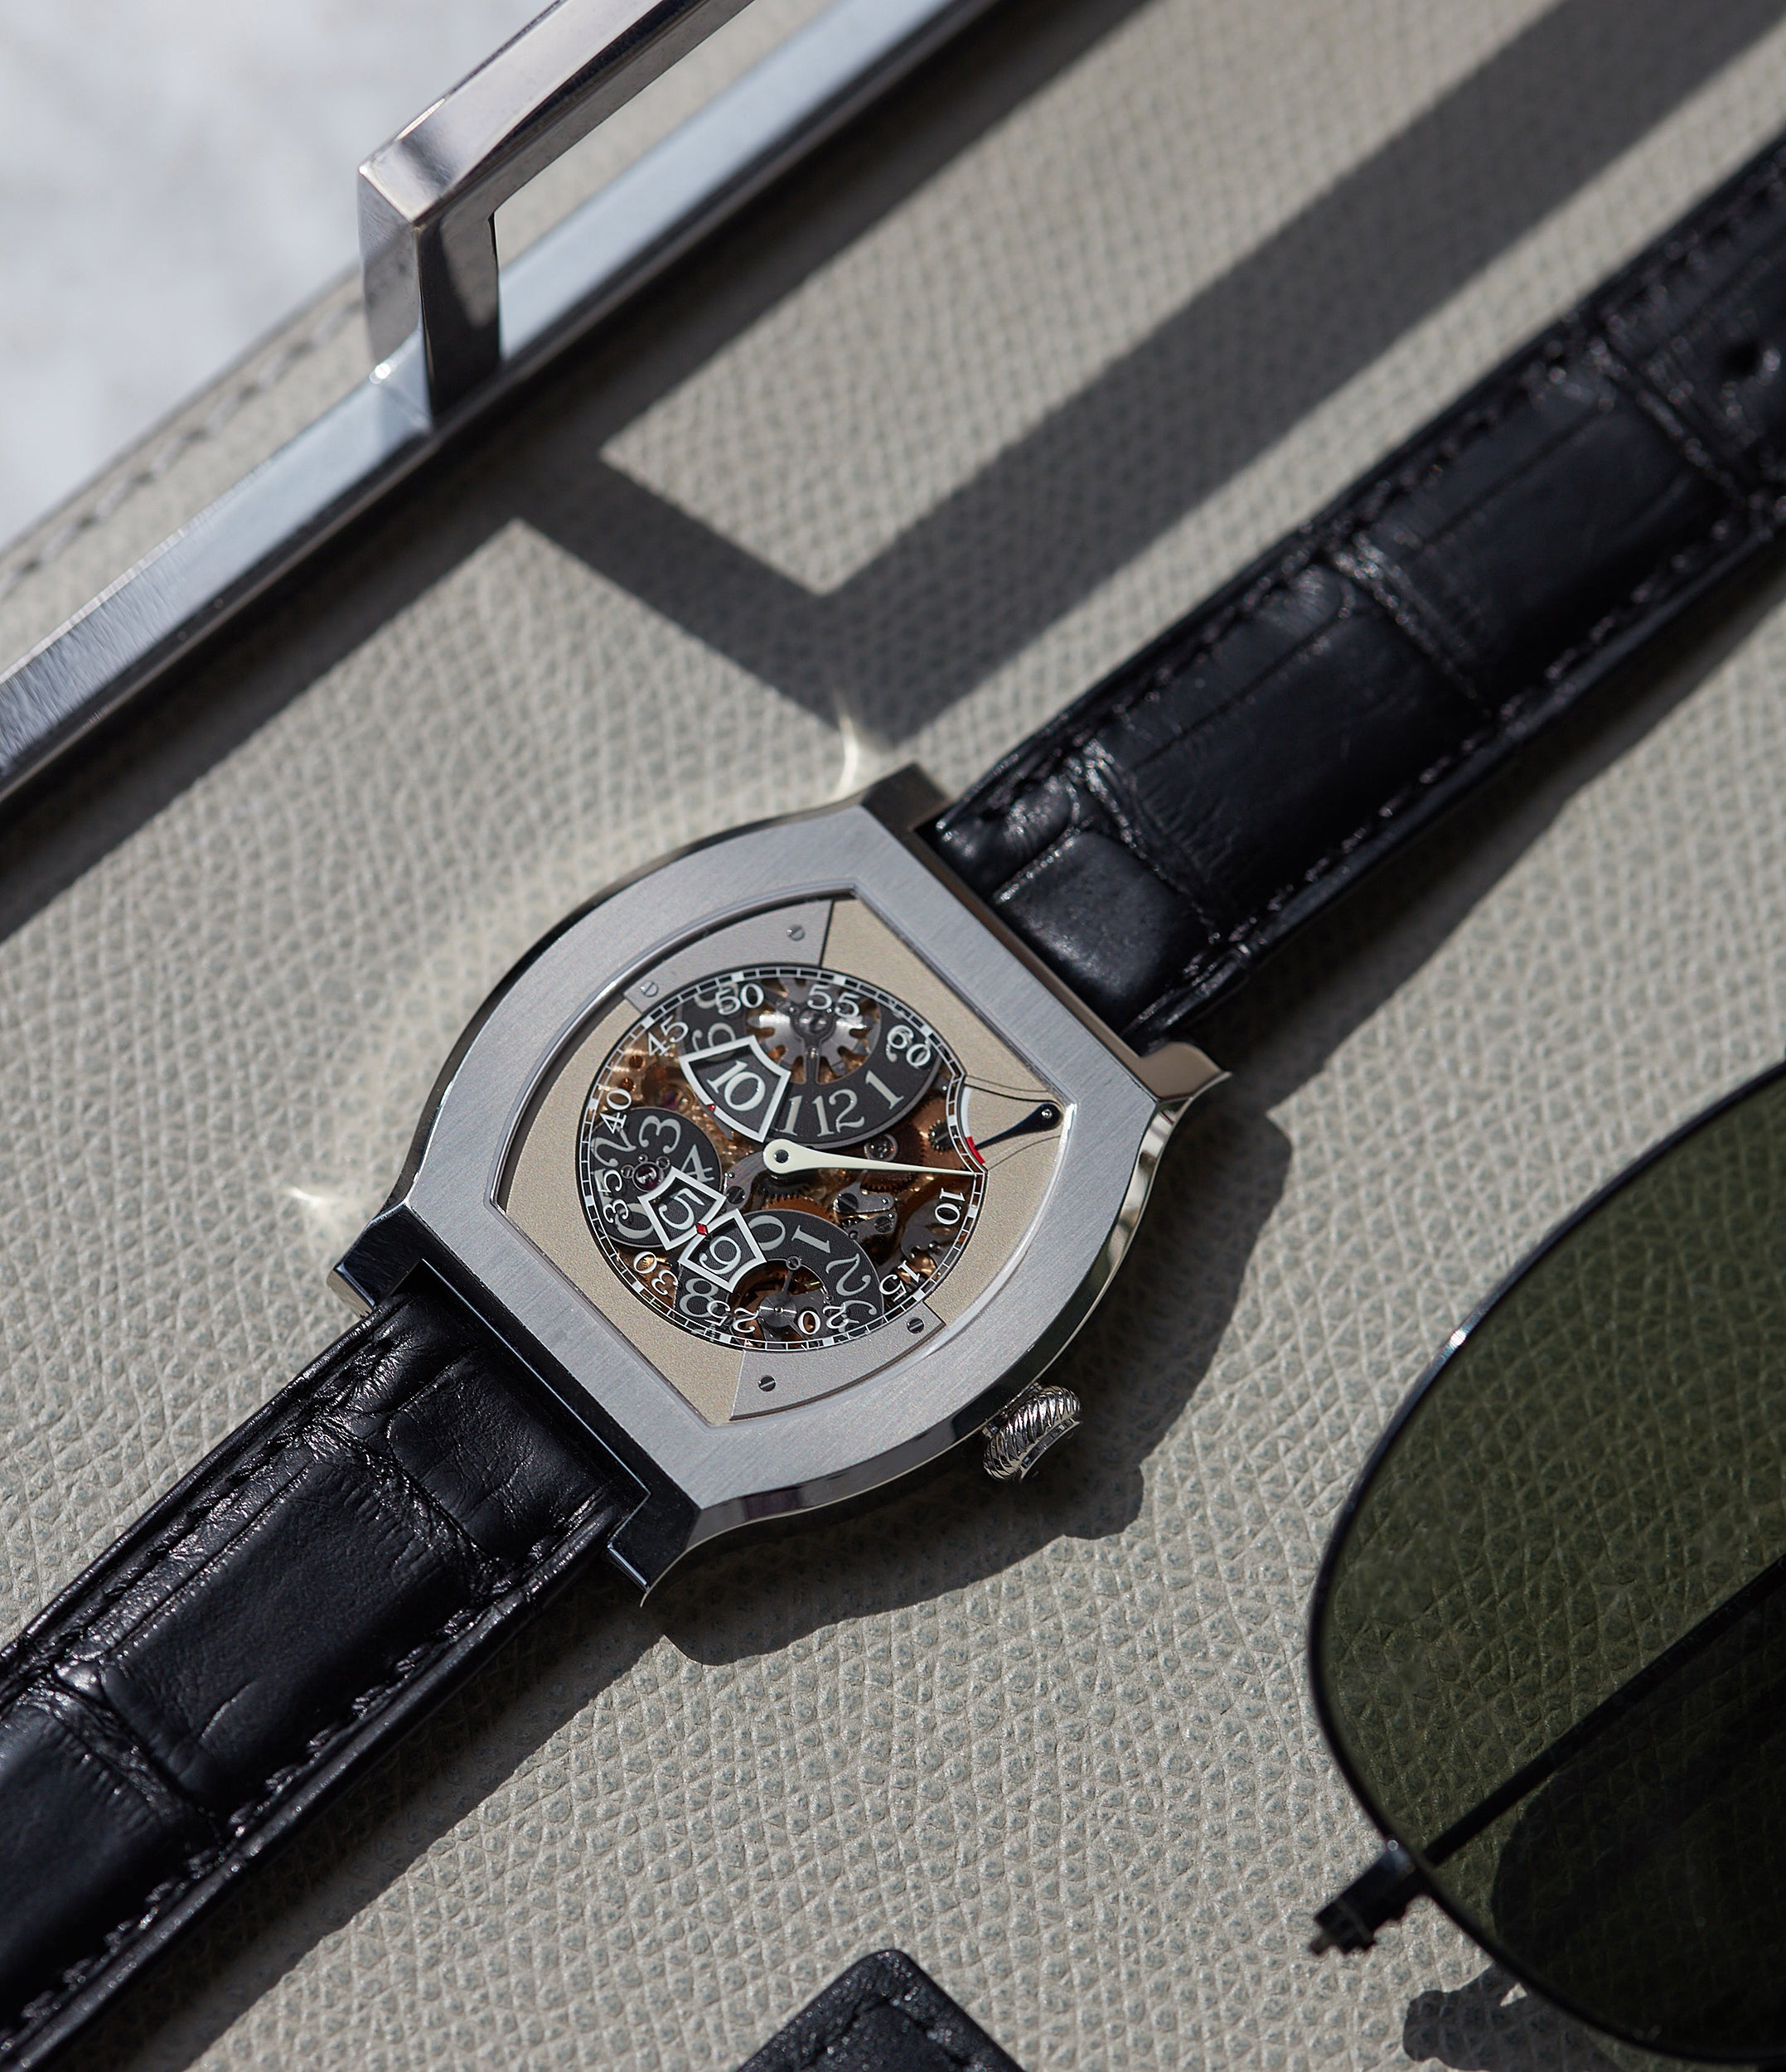 rare F. P. Journe Vagabondage 3 jumping hours seconds Limited edition of 69 platinum watch from 2018 for sale online at A Collected Man London UK specialist of independent watchmakers